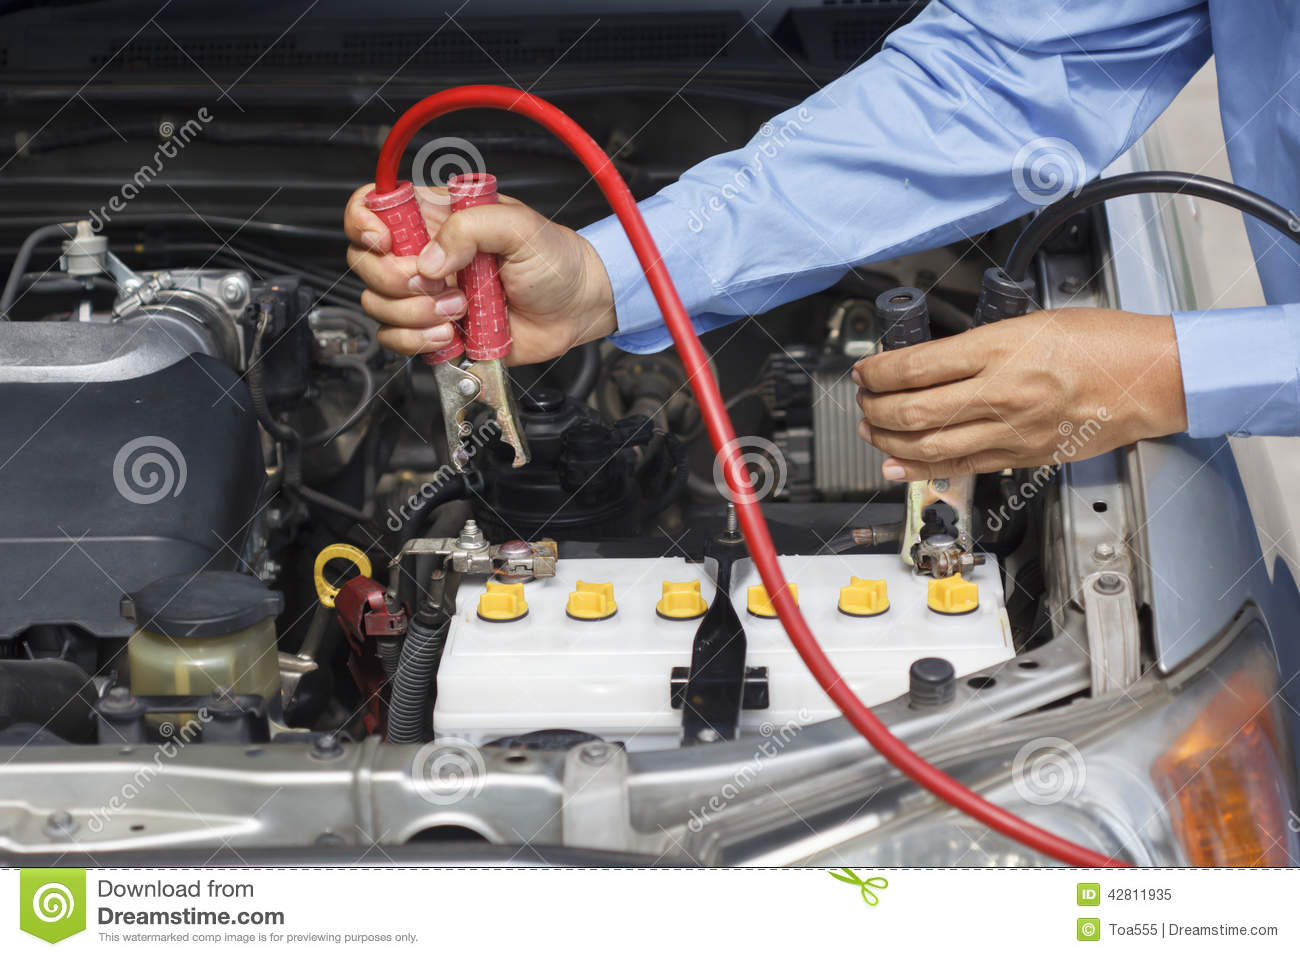 Businessman using jumper cables to start a car